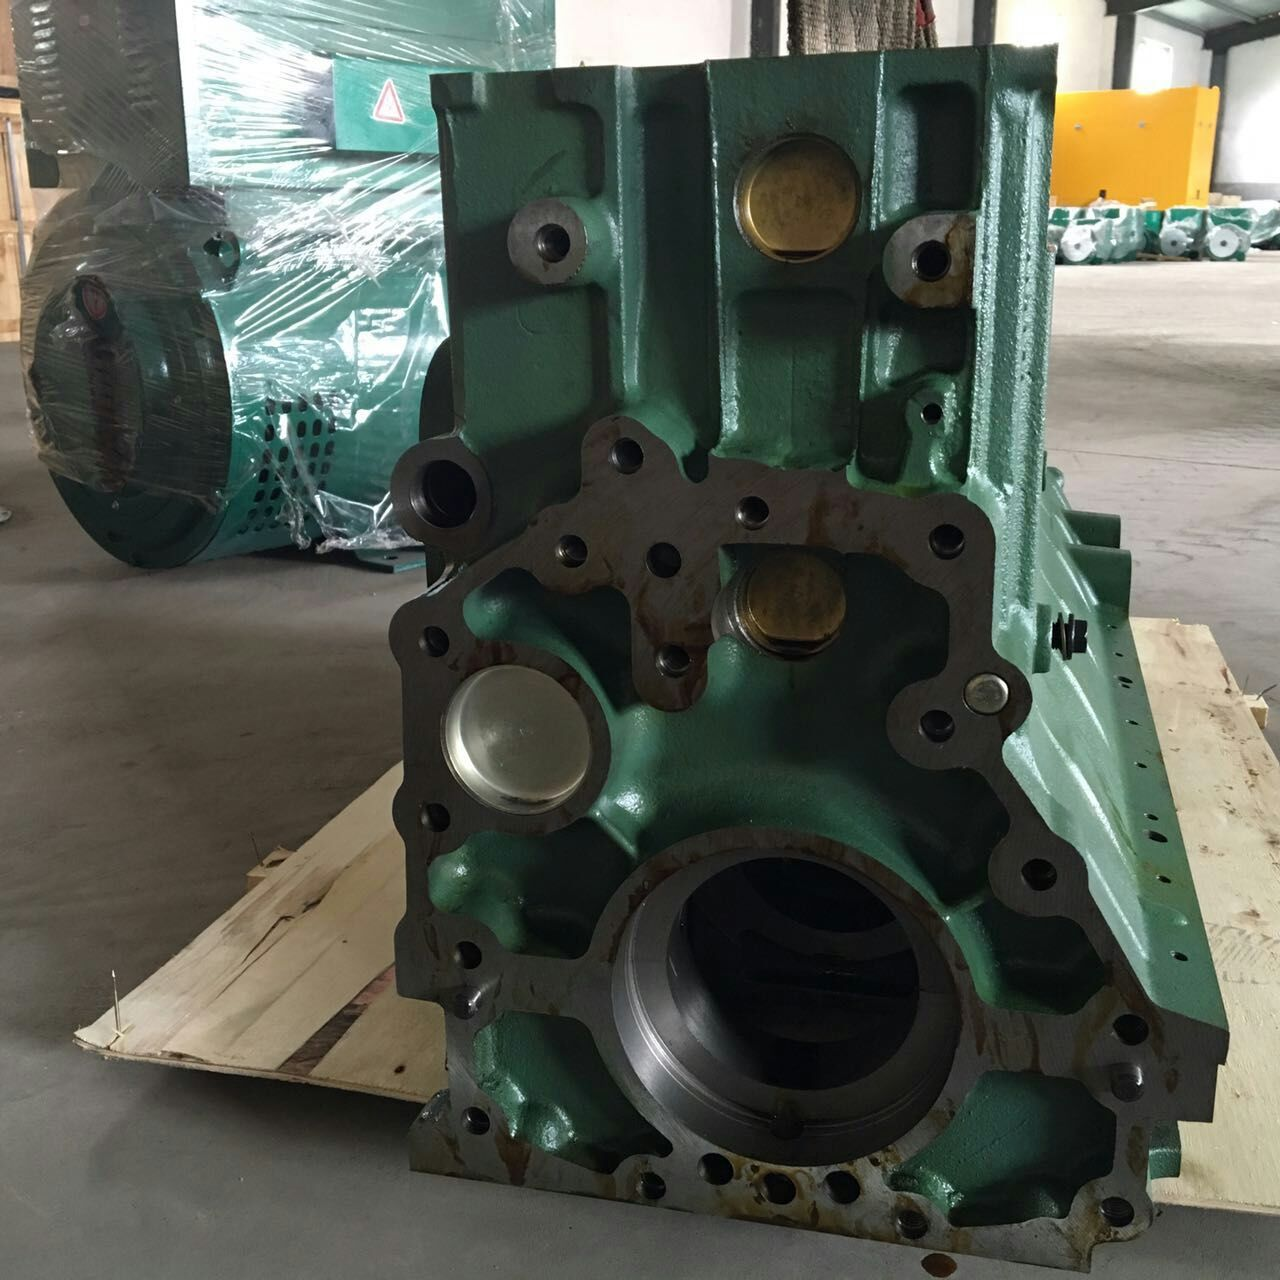 Weichai country three pumps 612600900217 cement mixer cylinder block Weichai original factory installed parts quality assurance